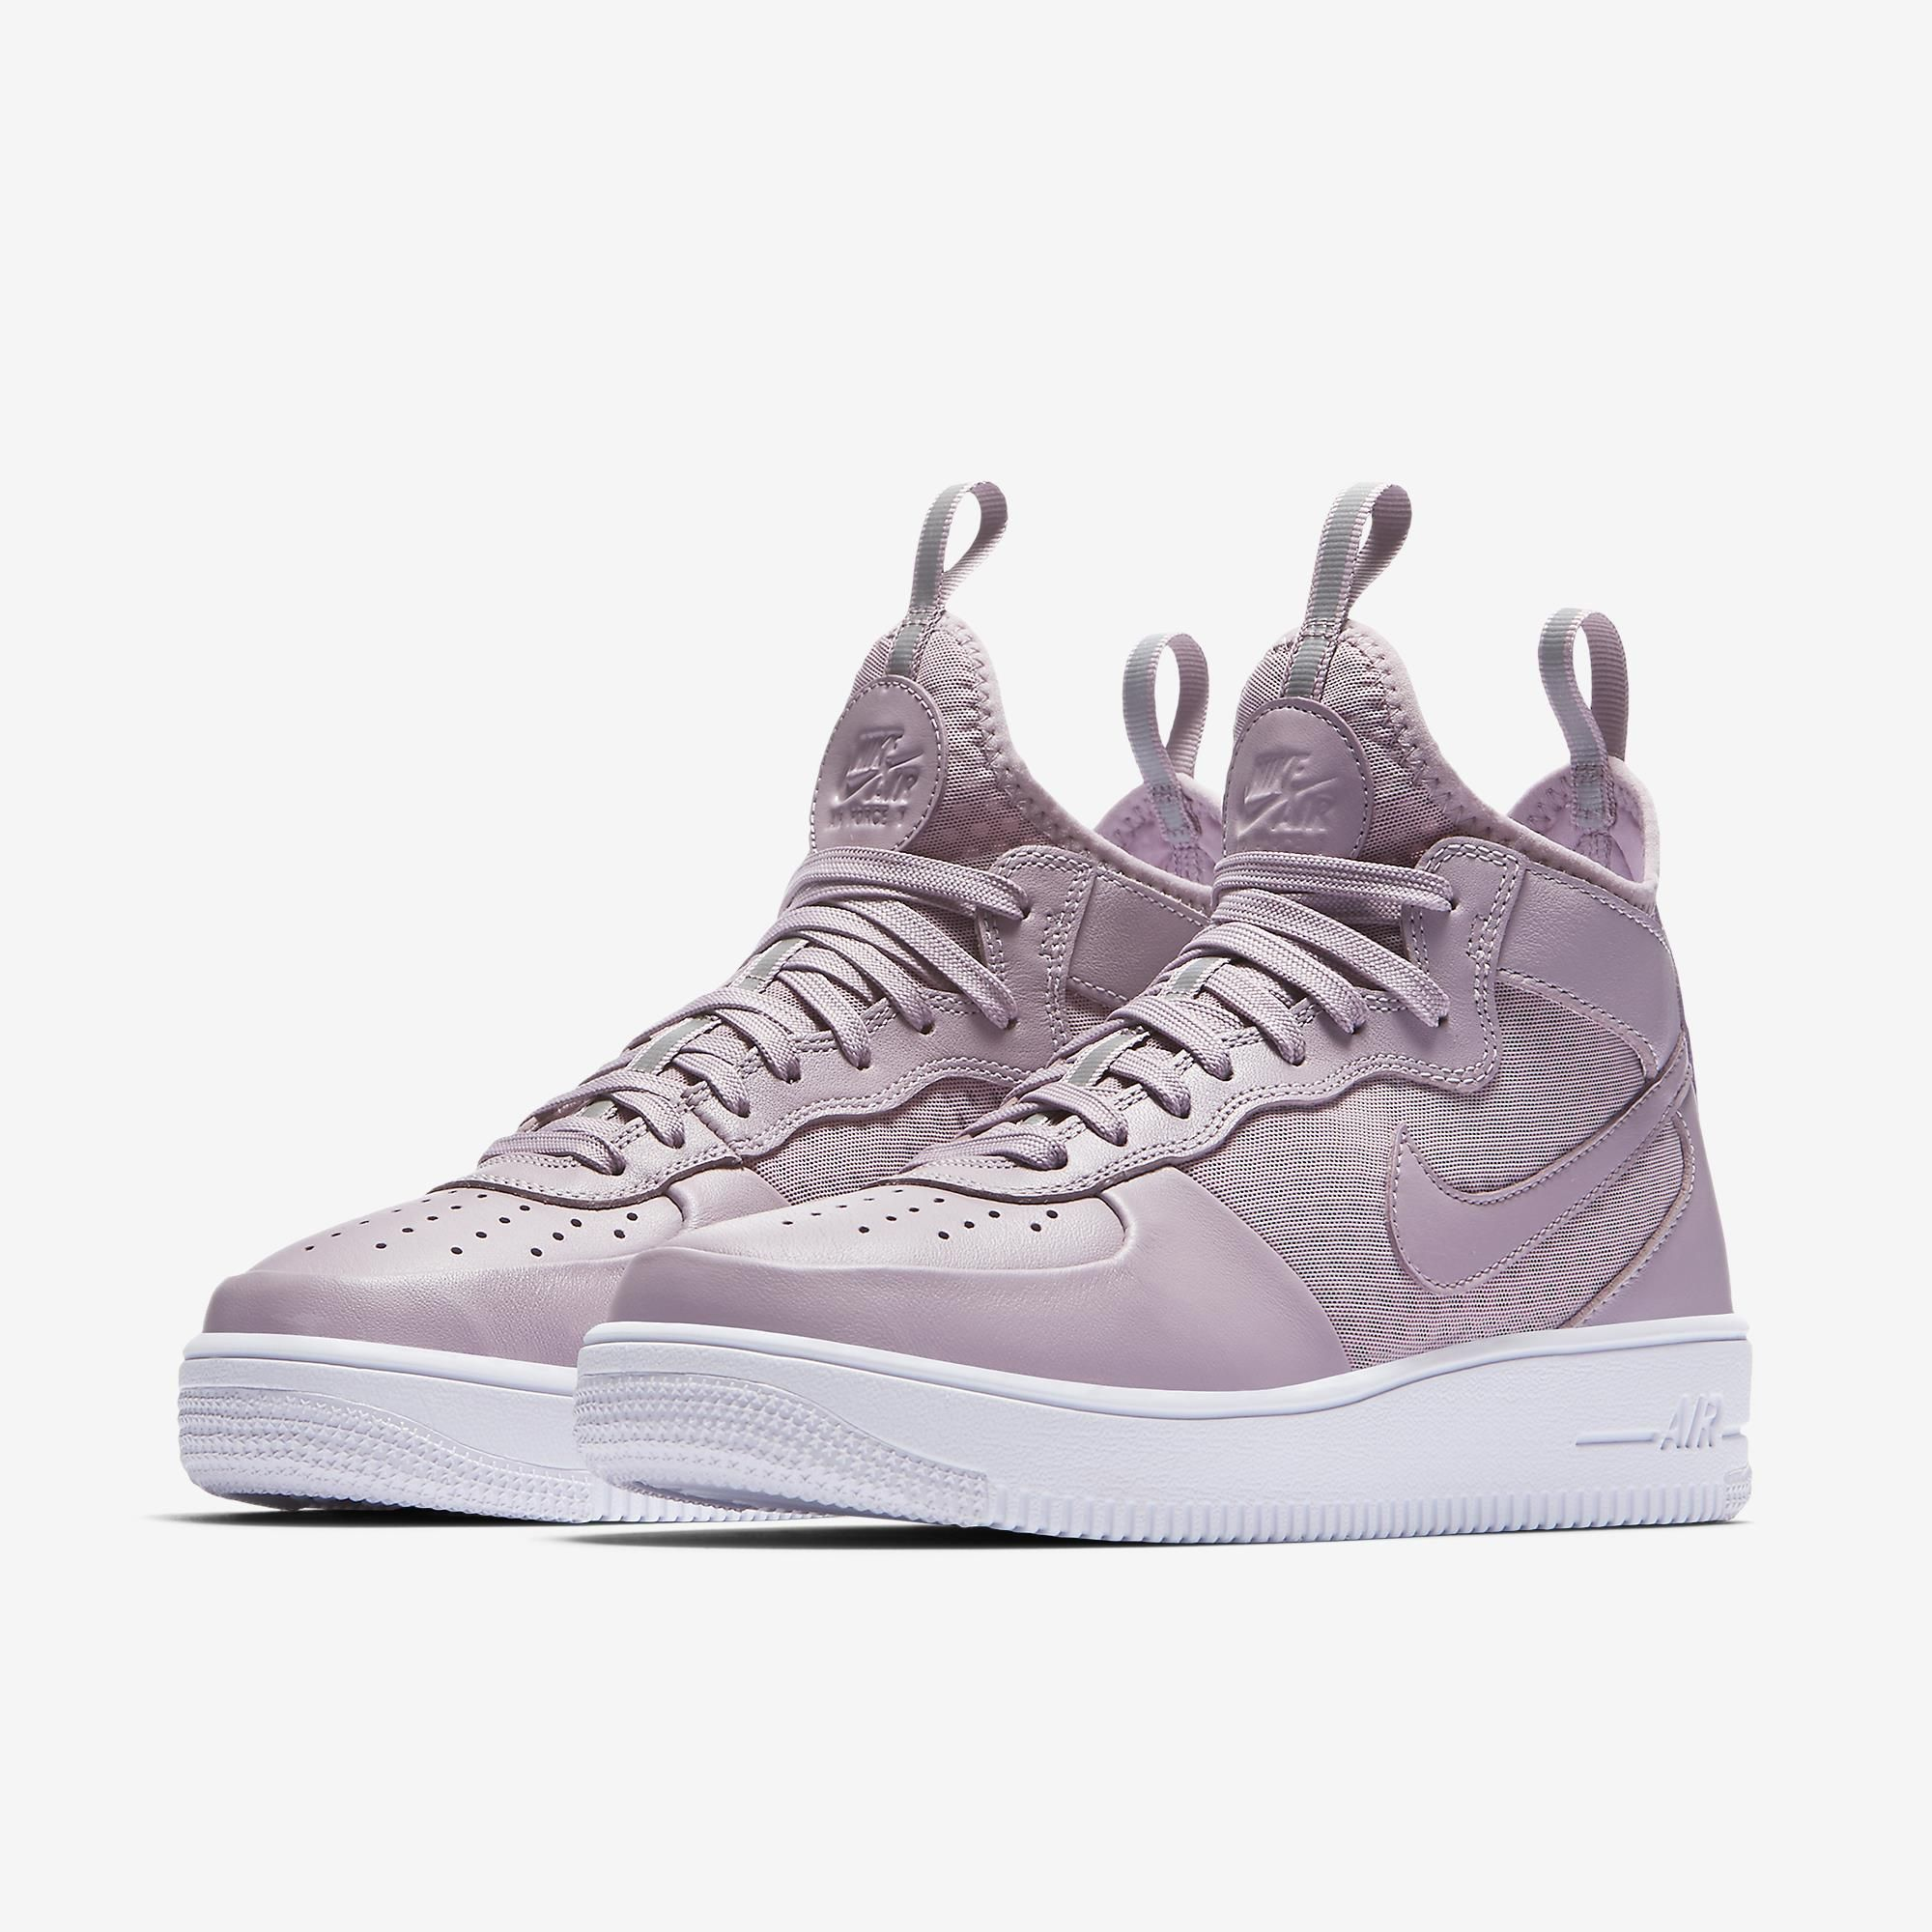 9938555075d6 Tênis Nike Air Force 1 UltraForce Mid Feminino